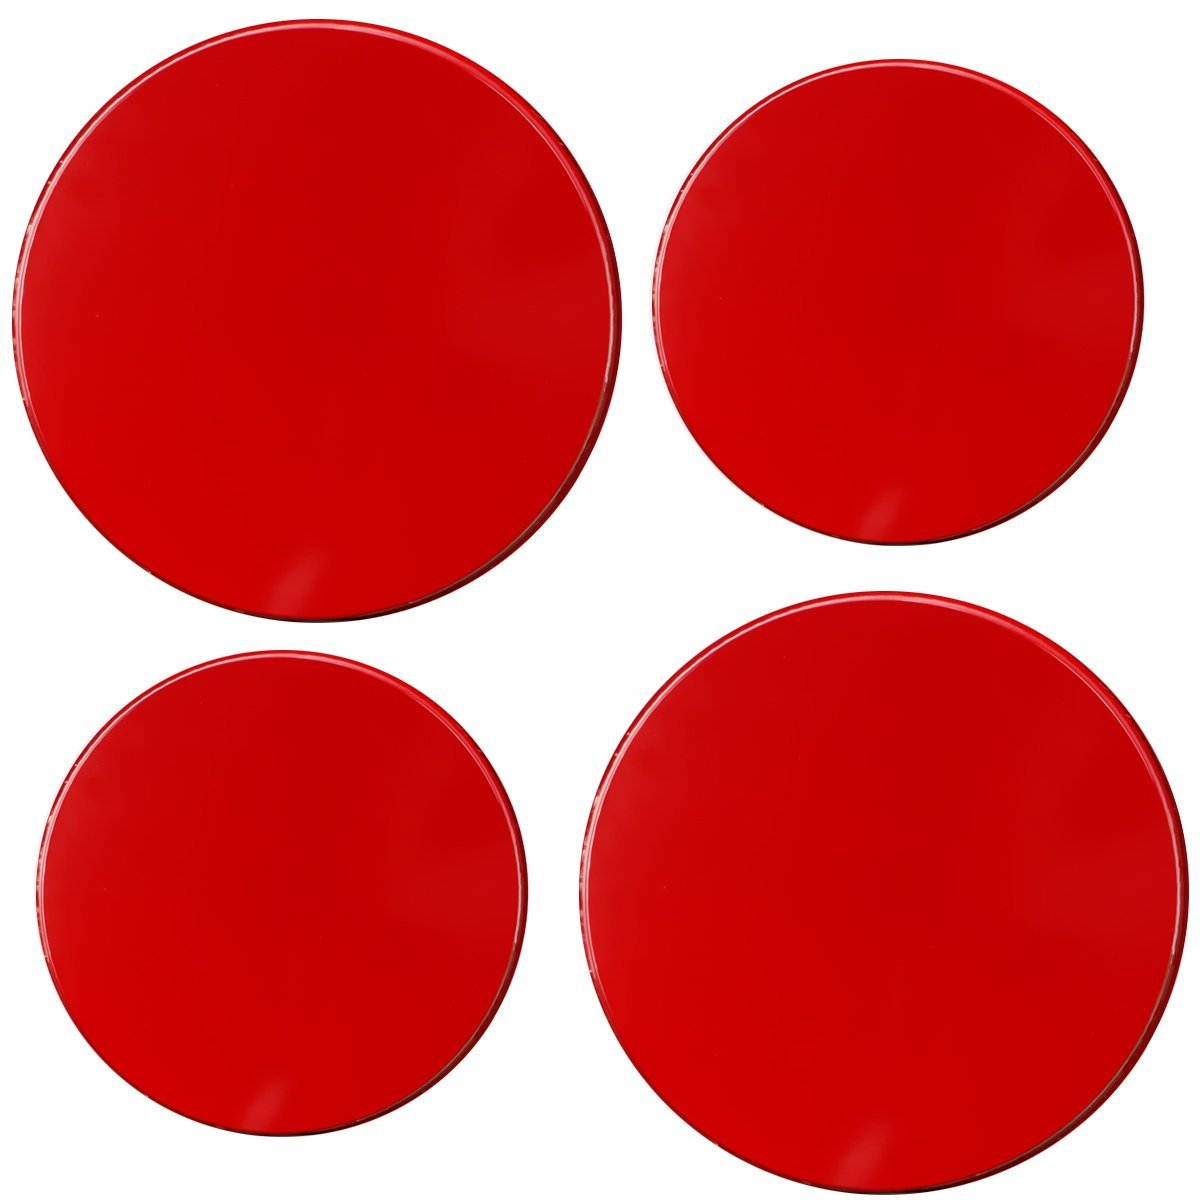 Set of 4 Reston Lloyd Electric Stove Burner Covers Red